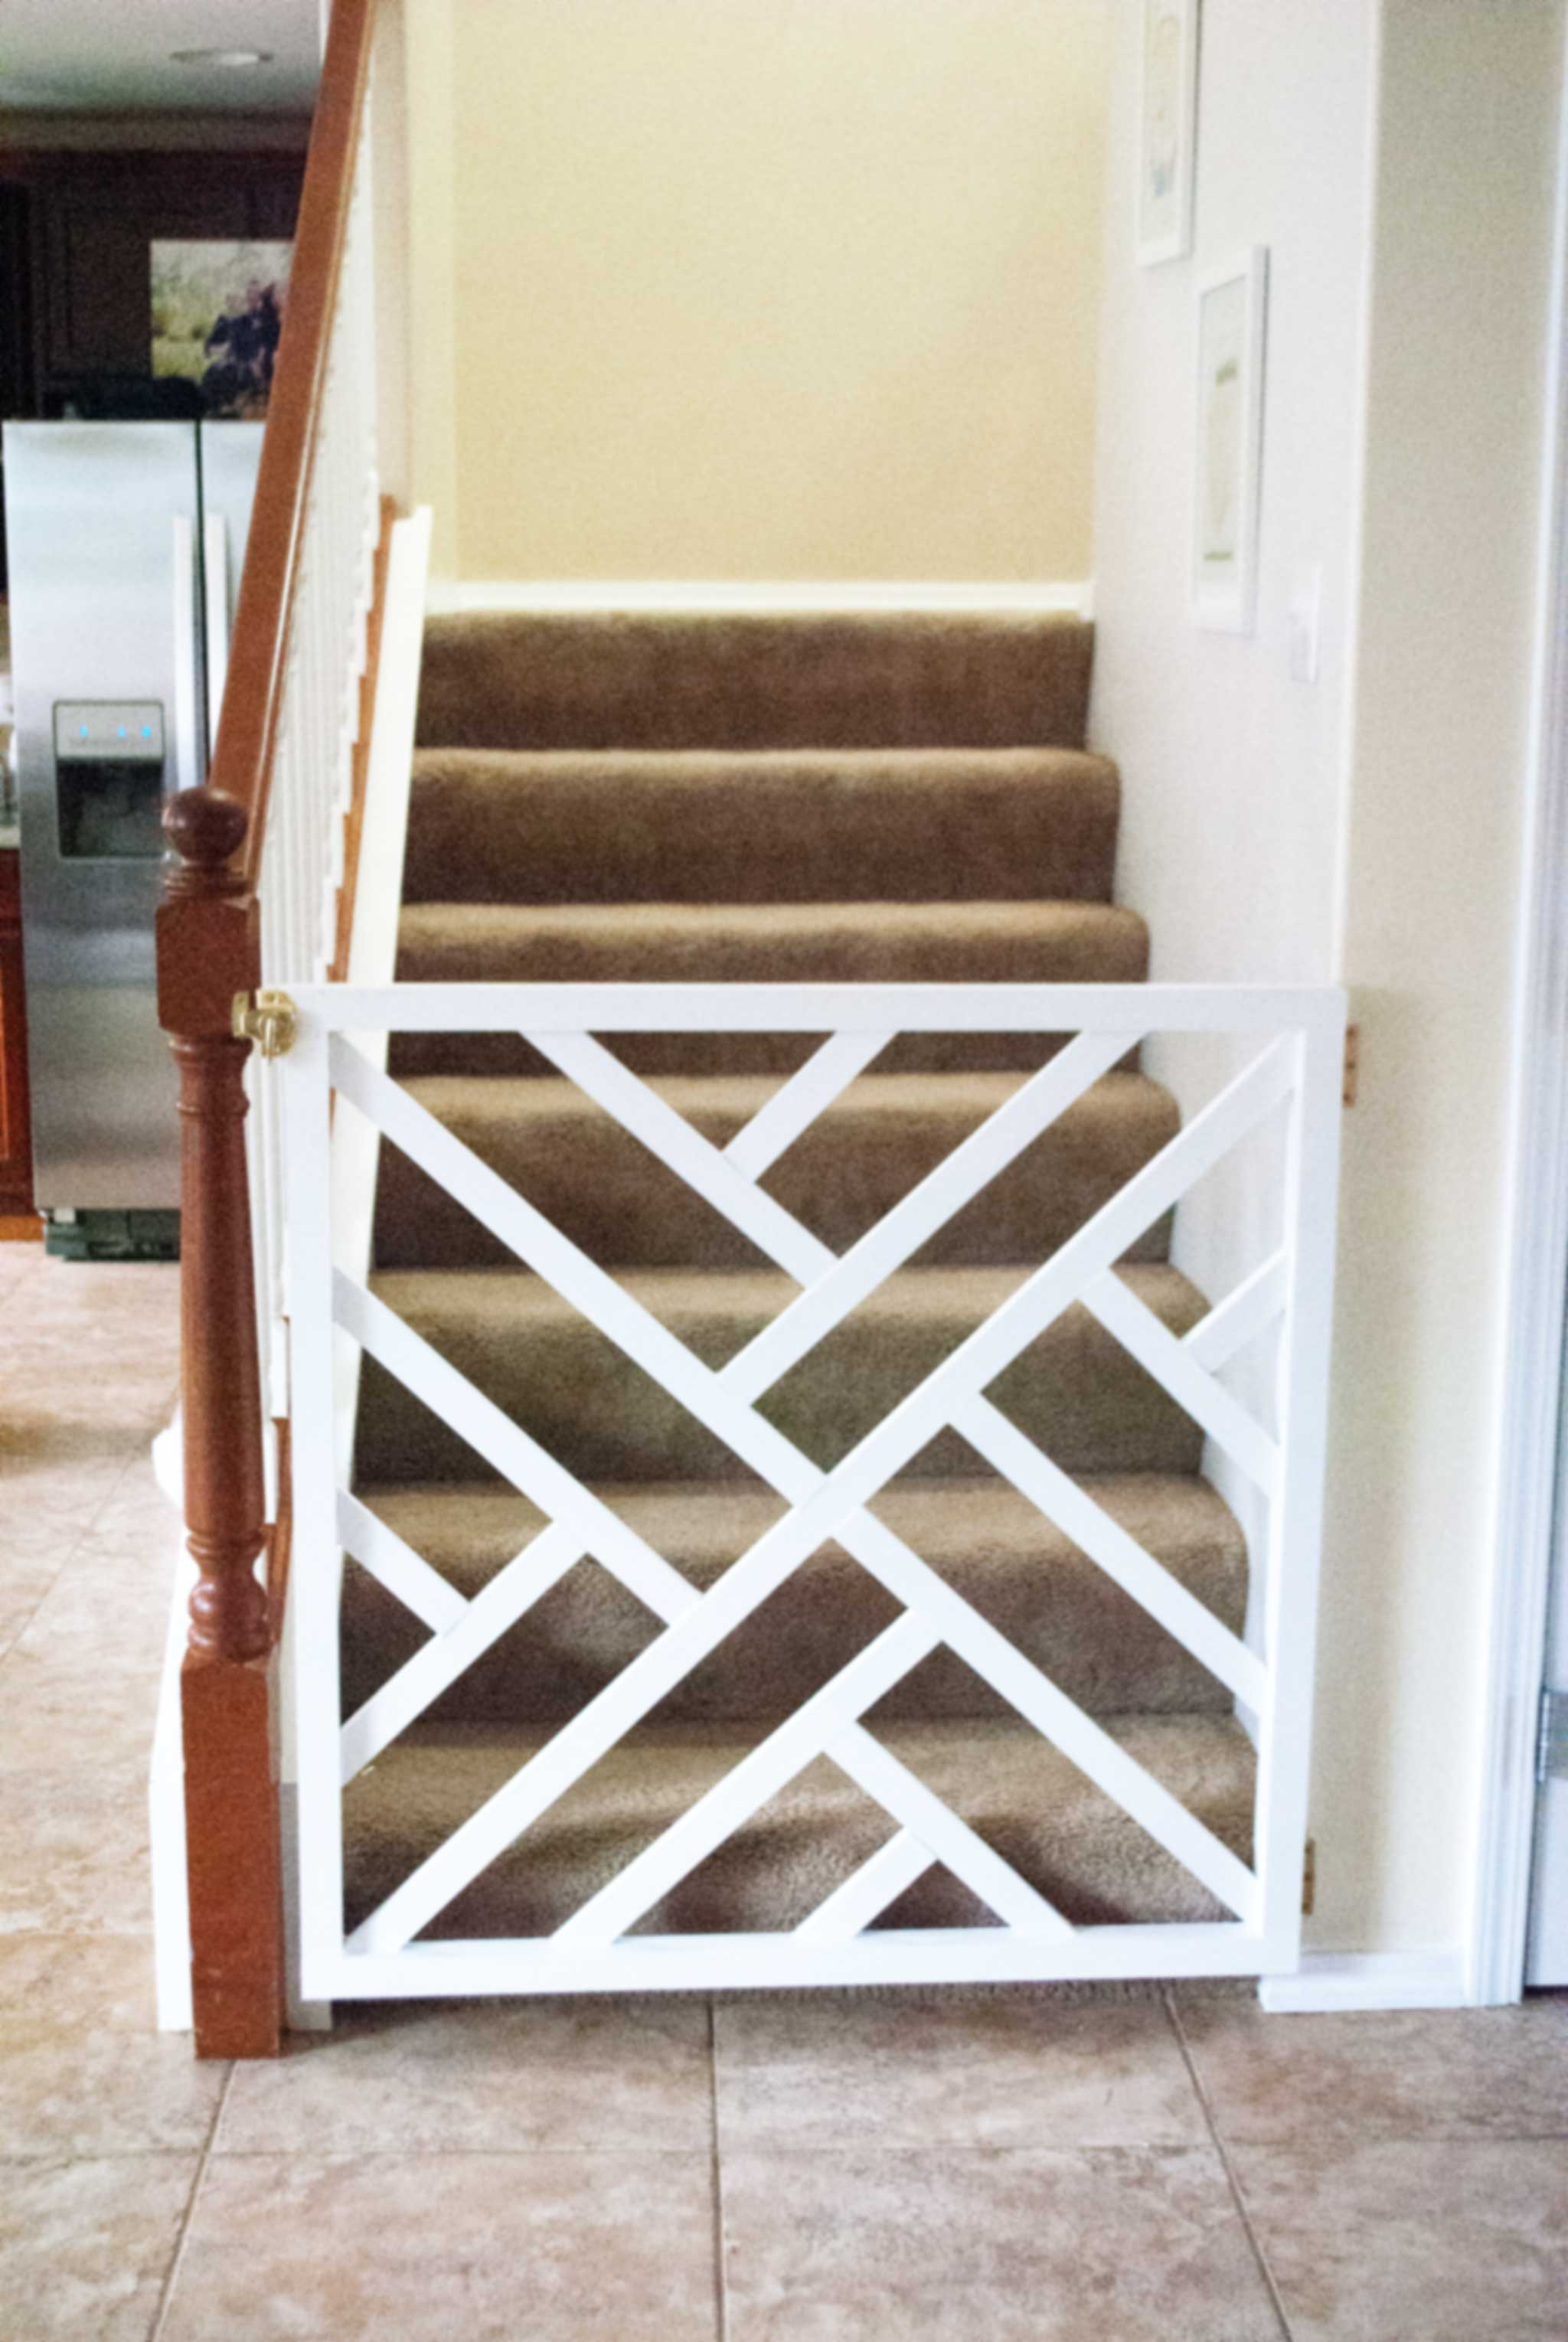 13 Diy Dog Gate Ideas: Do-it-Yourself Chippendale Pet Gate